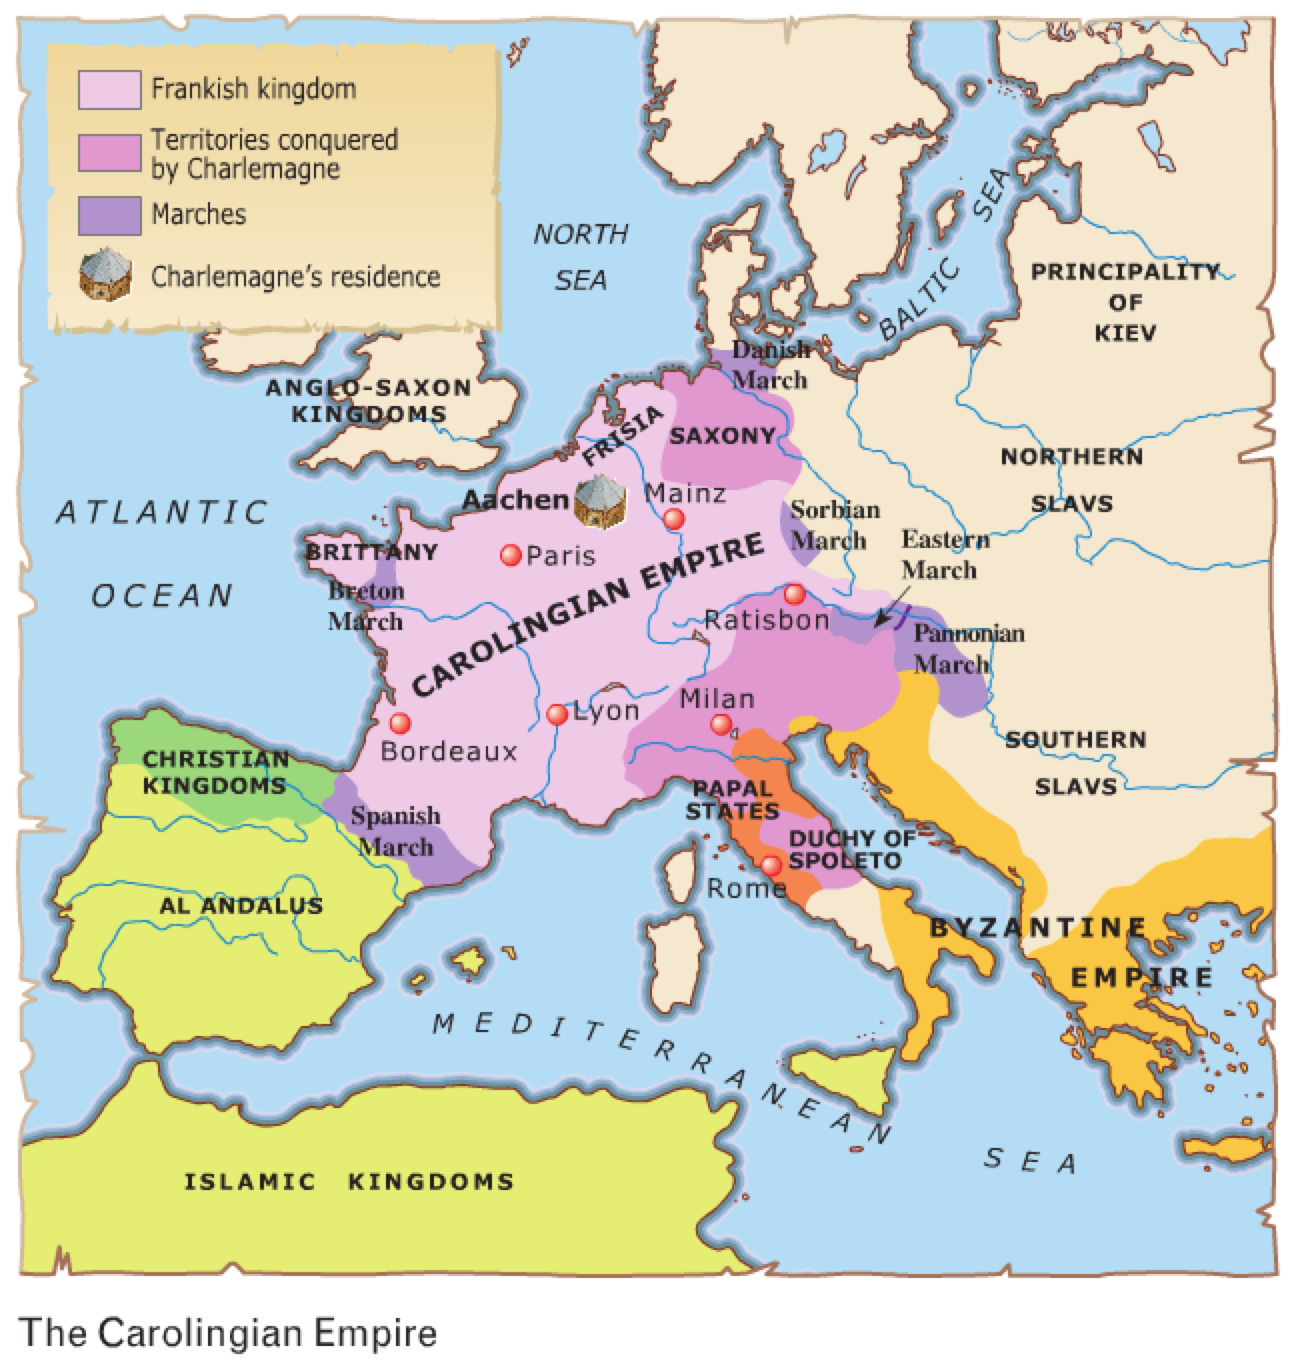 carolingian empire and charlemagne history